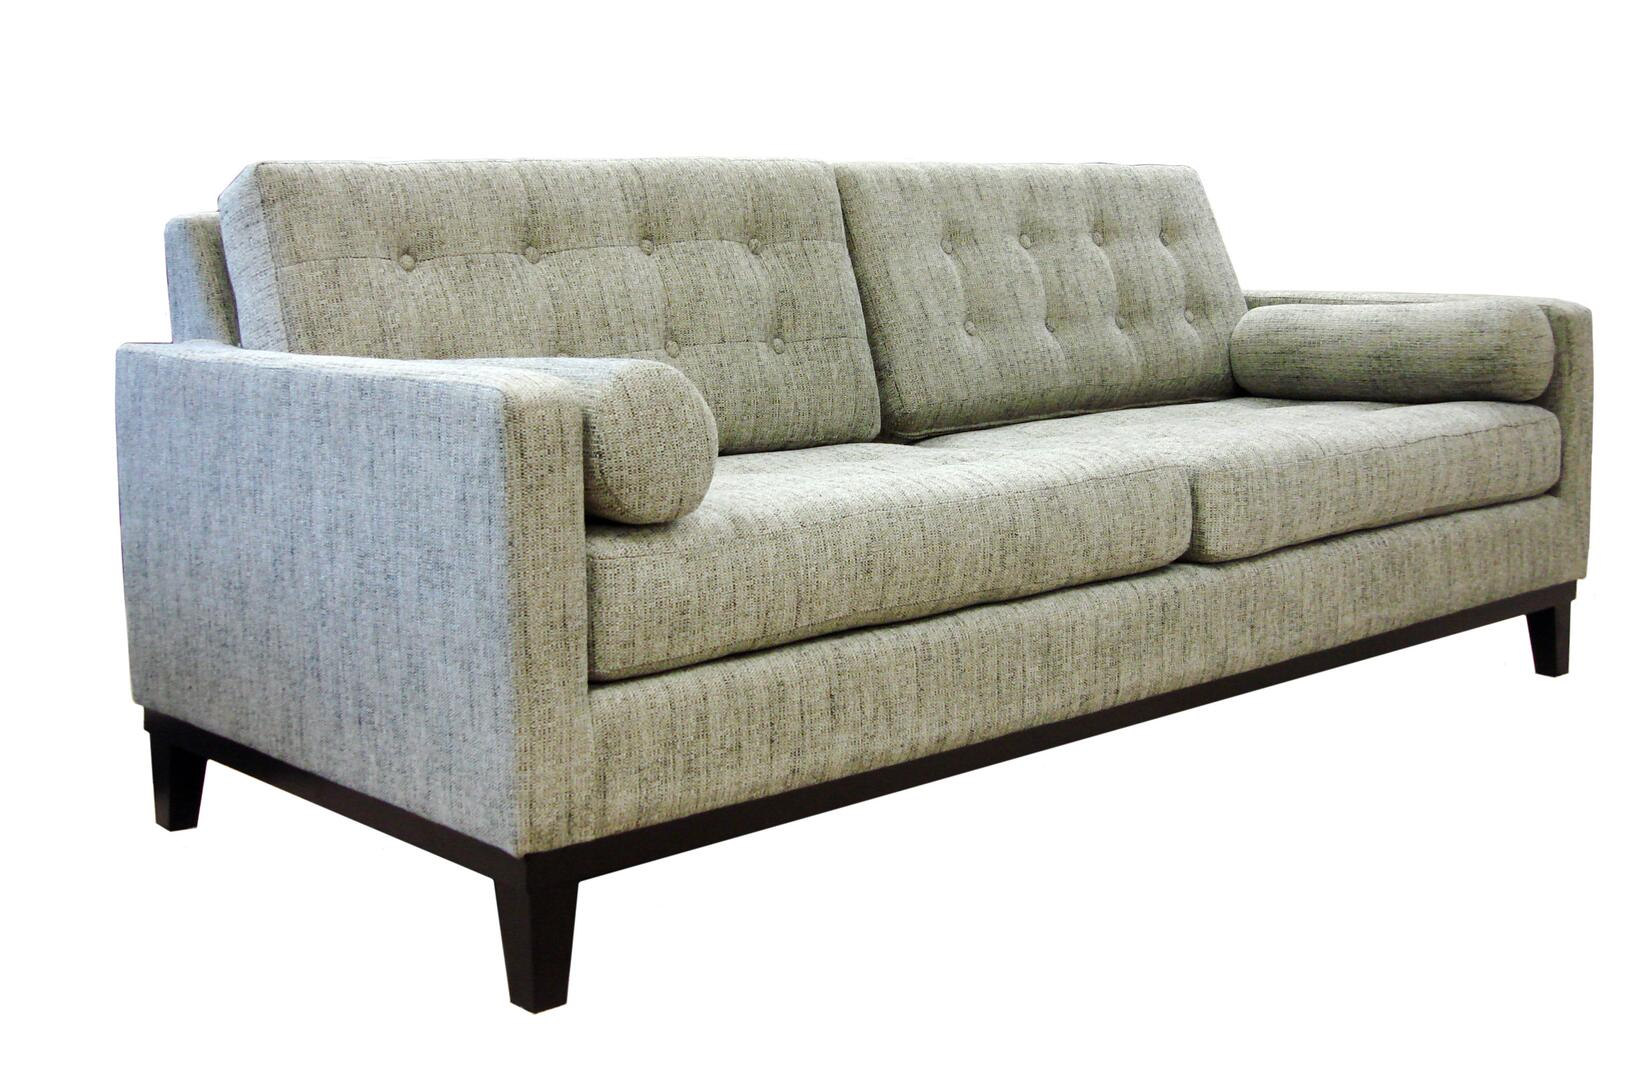 chenille sofa fabric care furniture beds designer armen living lc7253as stationary appliances